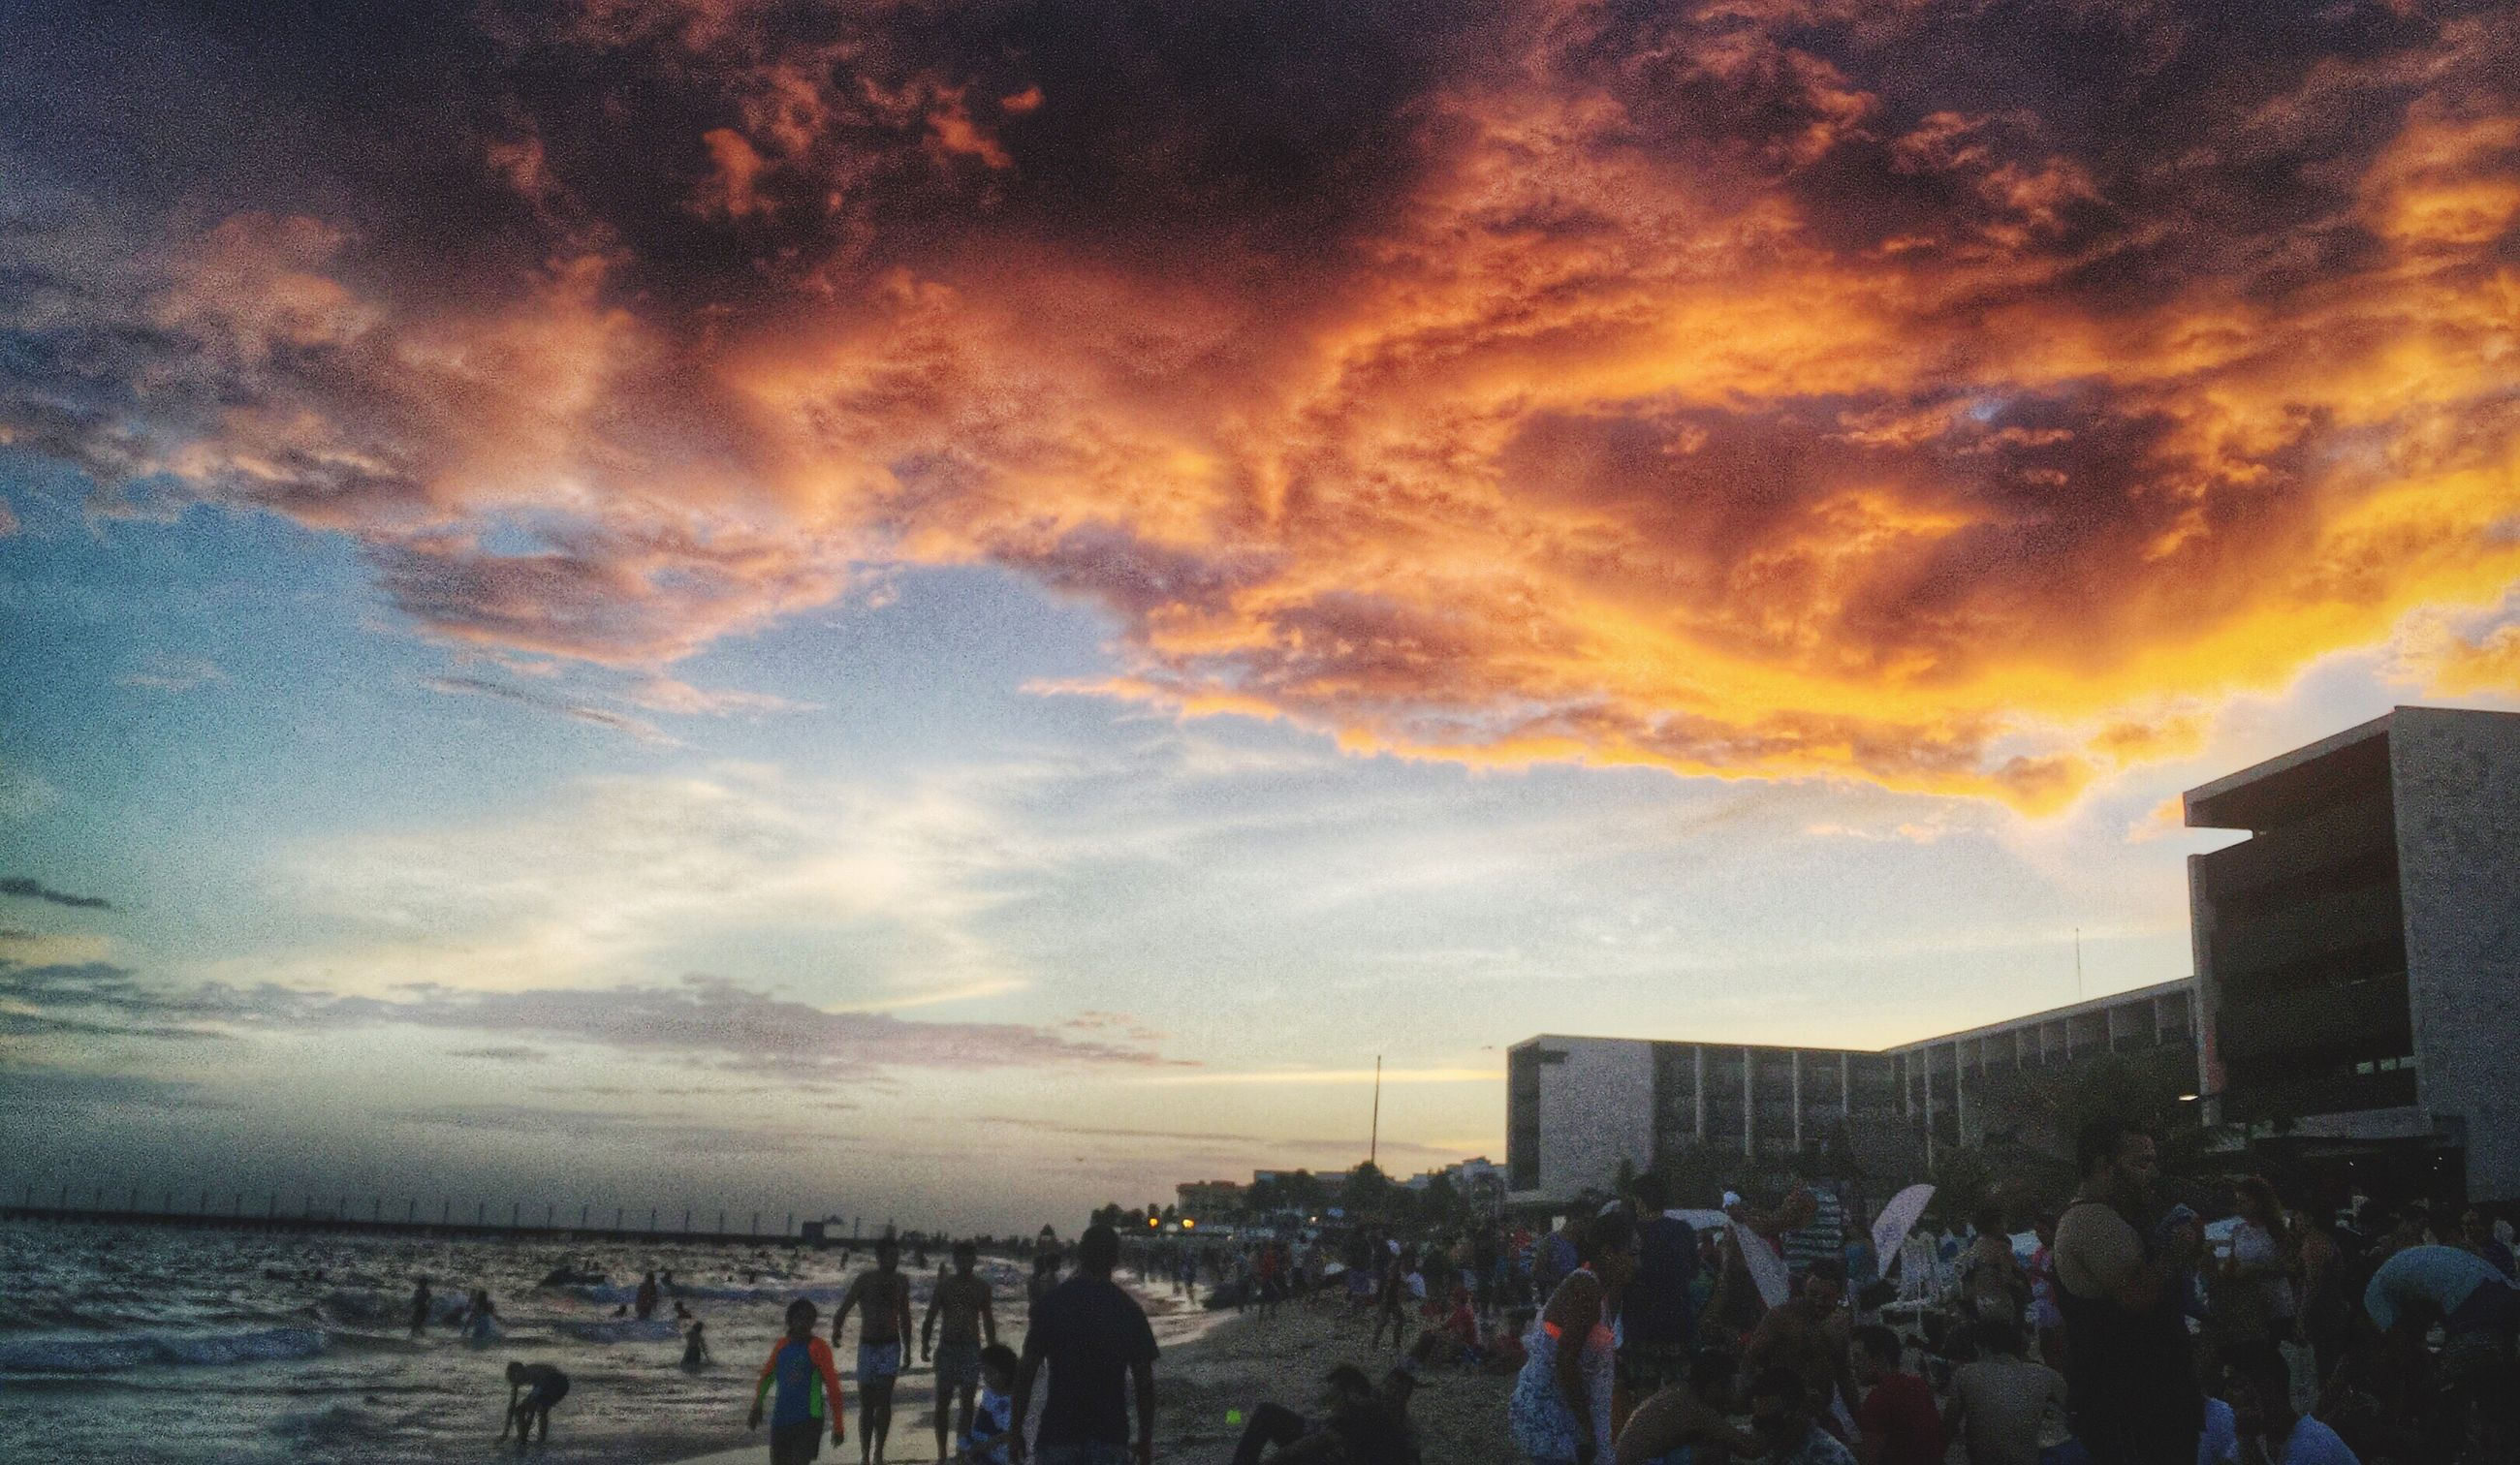 sky, sea, sunset, cloud - sky, large group of people, water, building exterior, beach, lifestyles, built structure, architecture, leisure activity, person, men, horizon over water, cloudy, cloud, city, silhouette